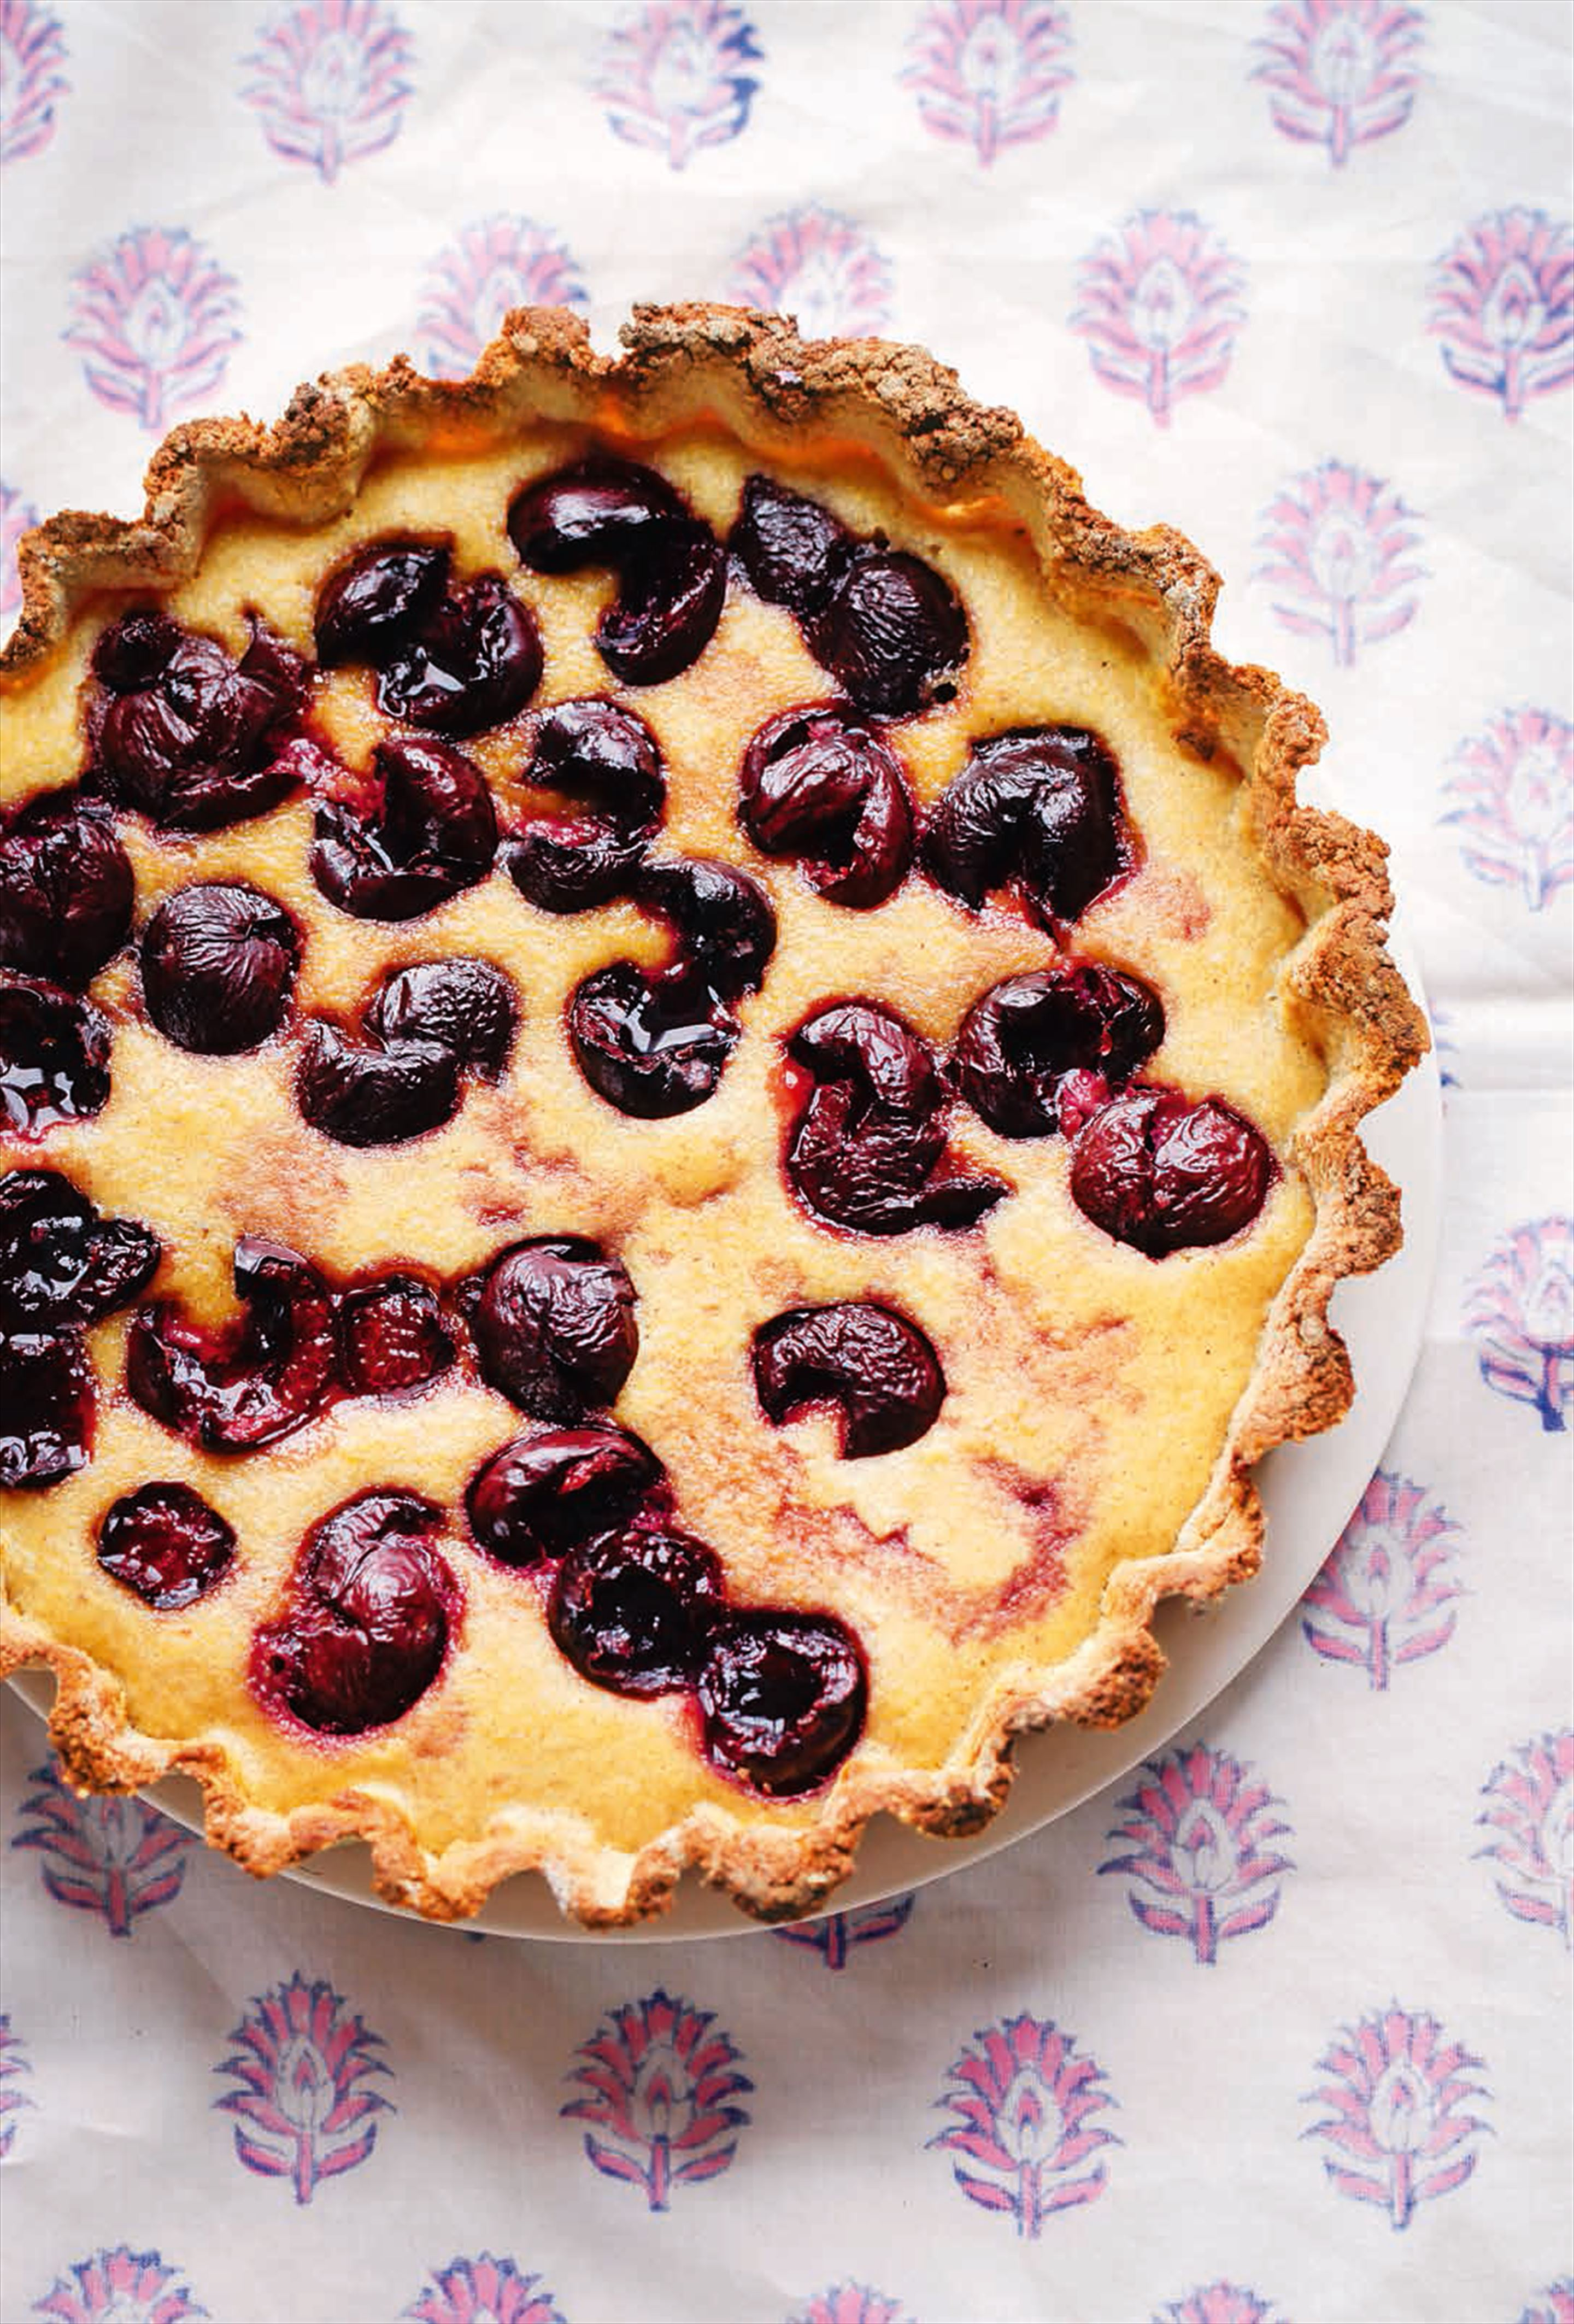 Cherry & almond tart